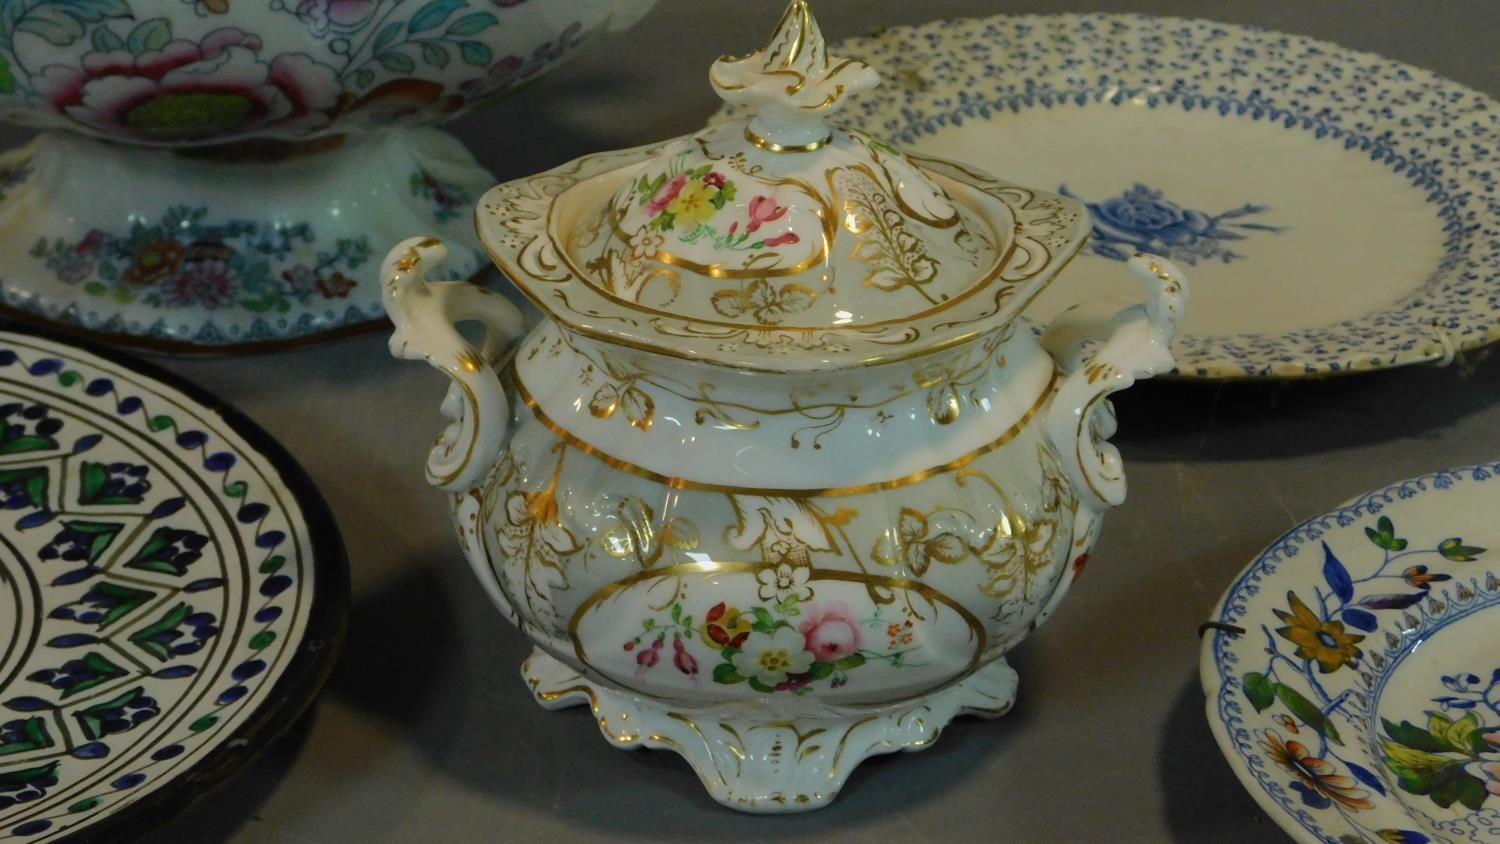 A 19th century Staffordshire ironstone tureen and cover (associated ladle) and various other - Image 15 of 18